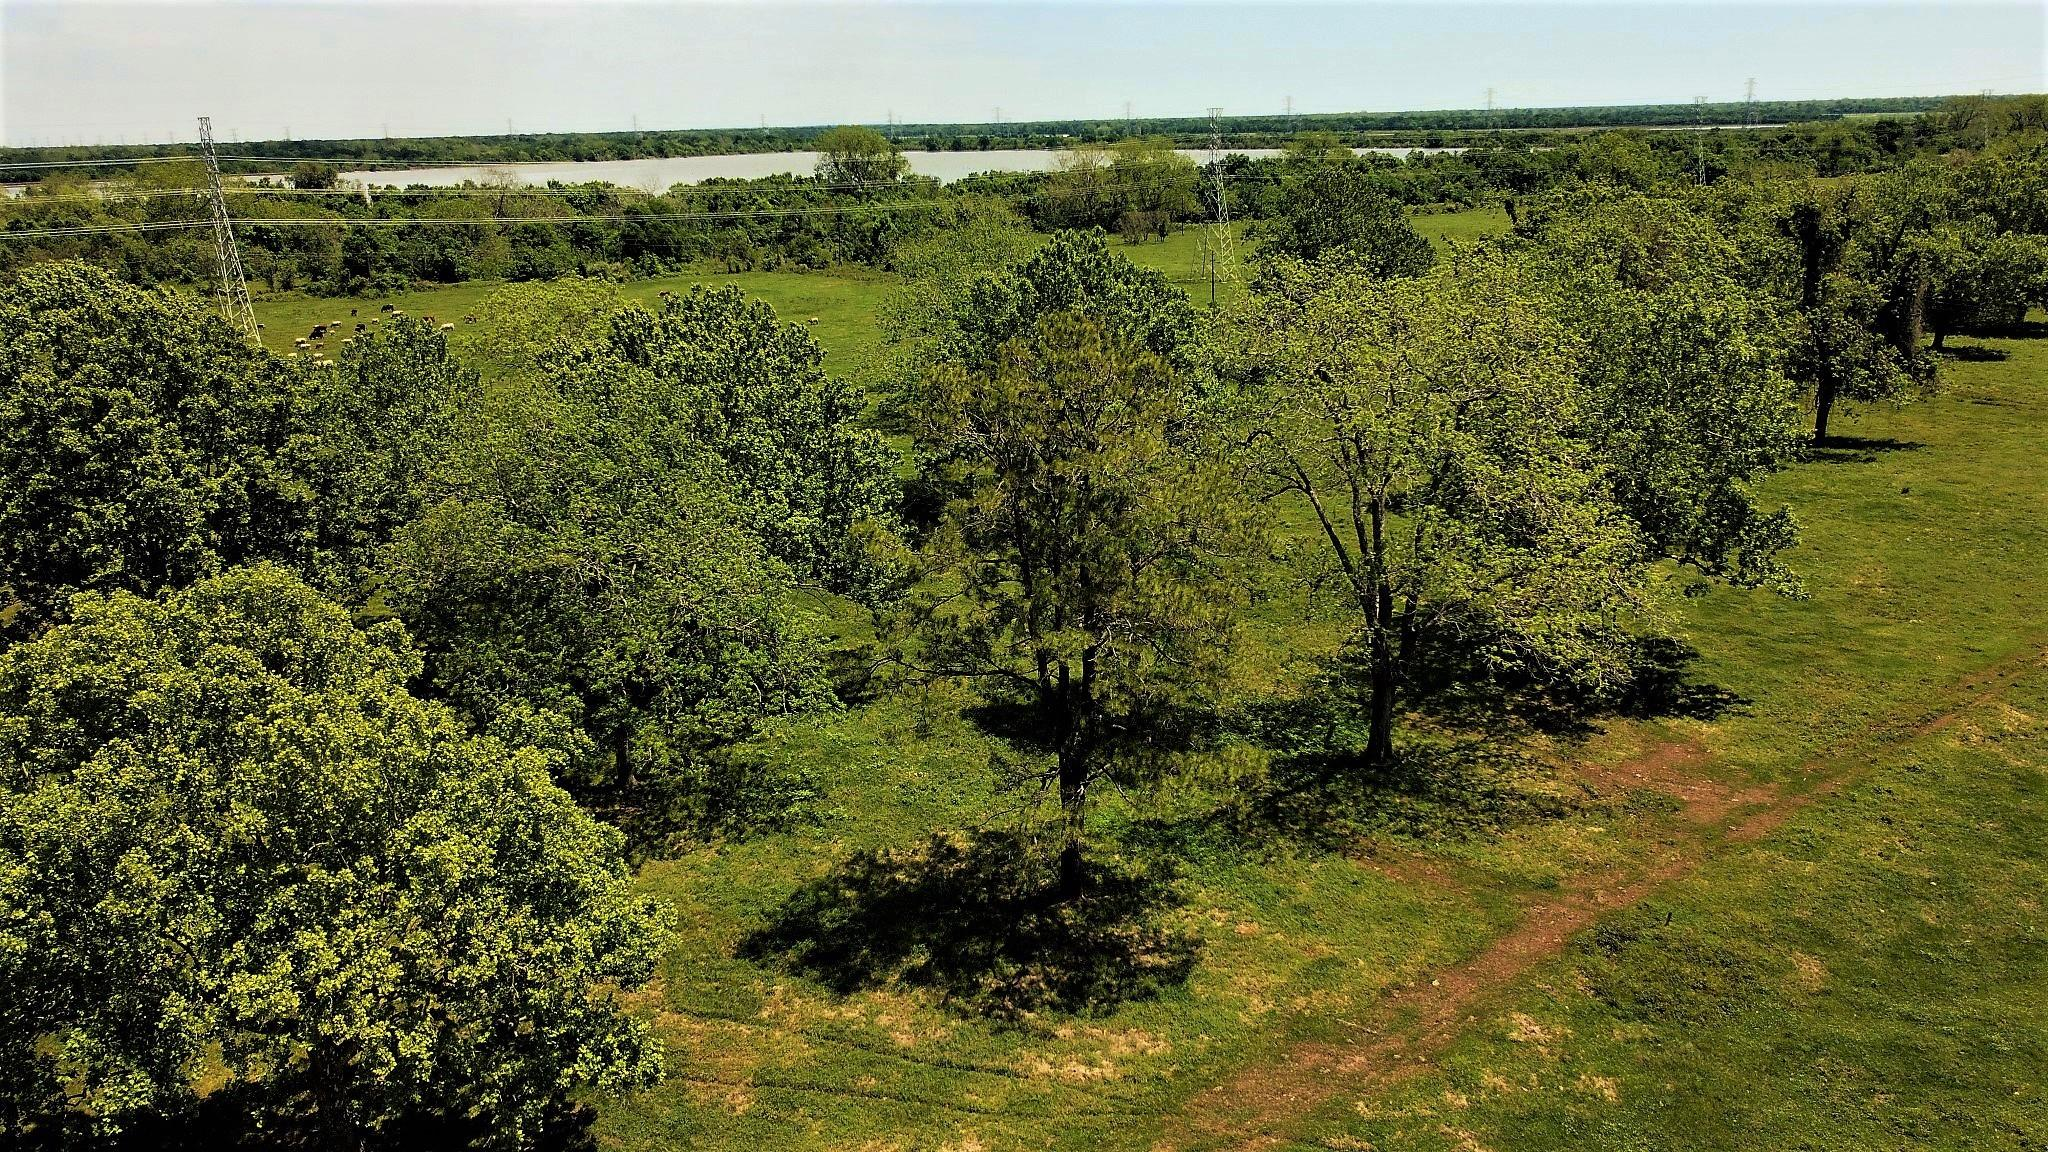 000000 Texasgulf Avenue Property Photo - Boling, TX real estate listing